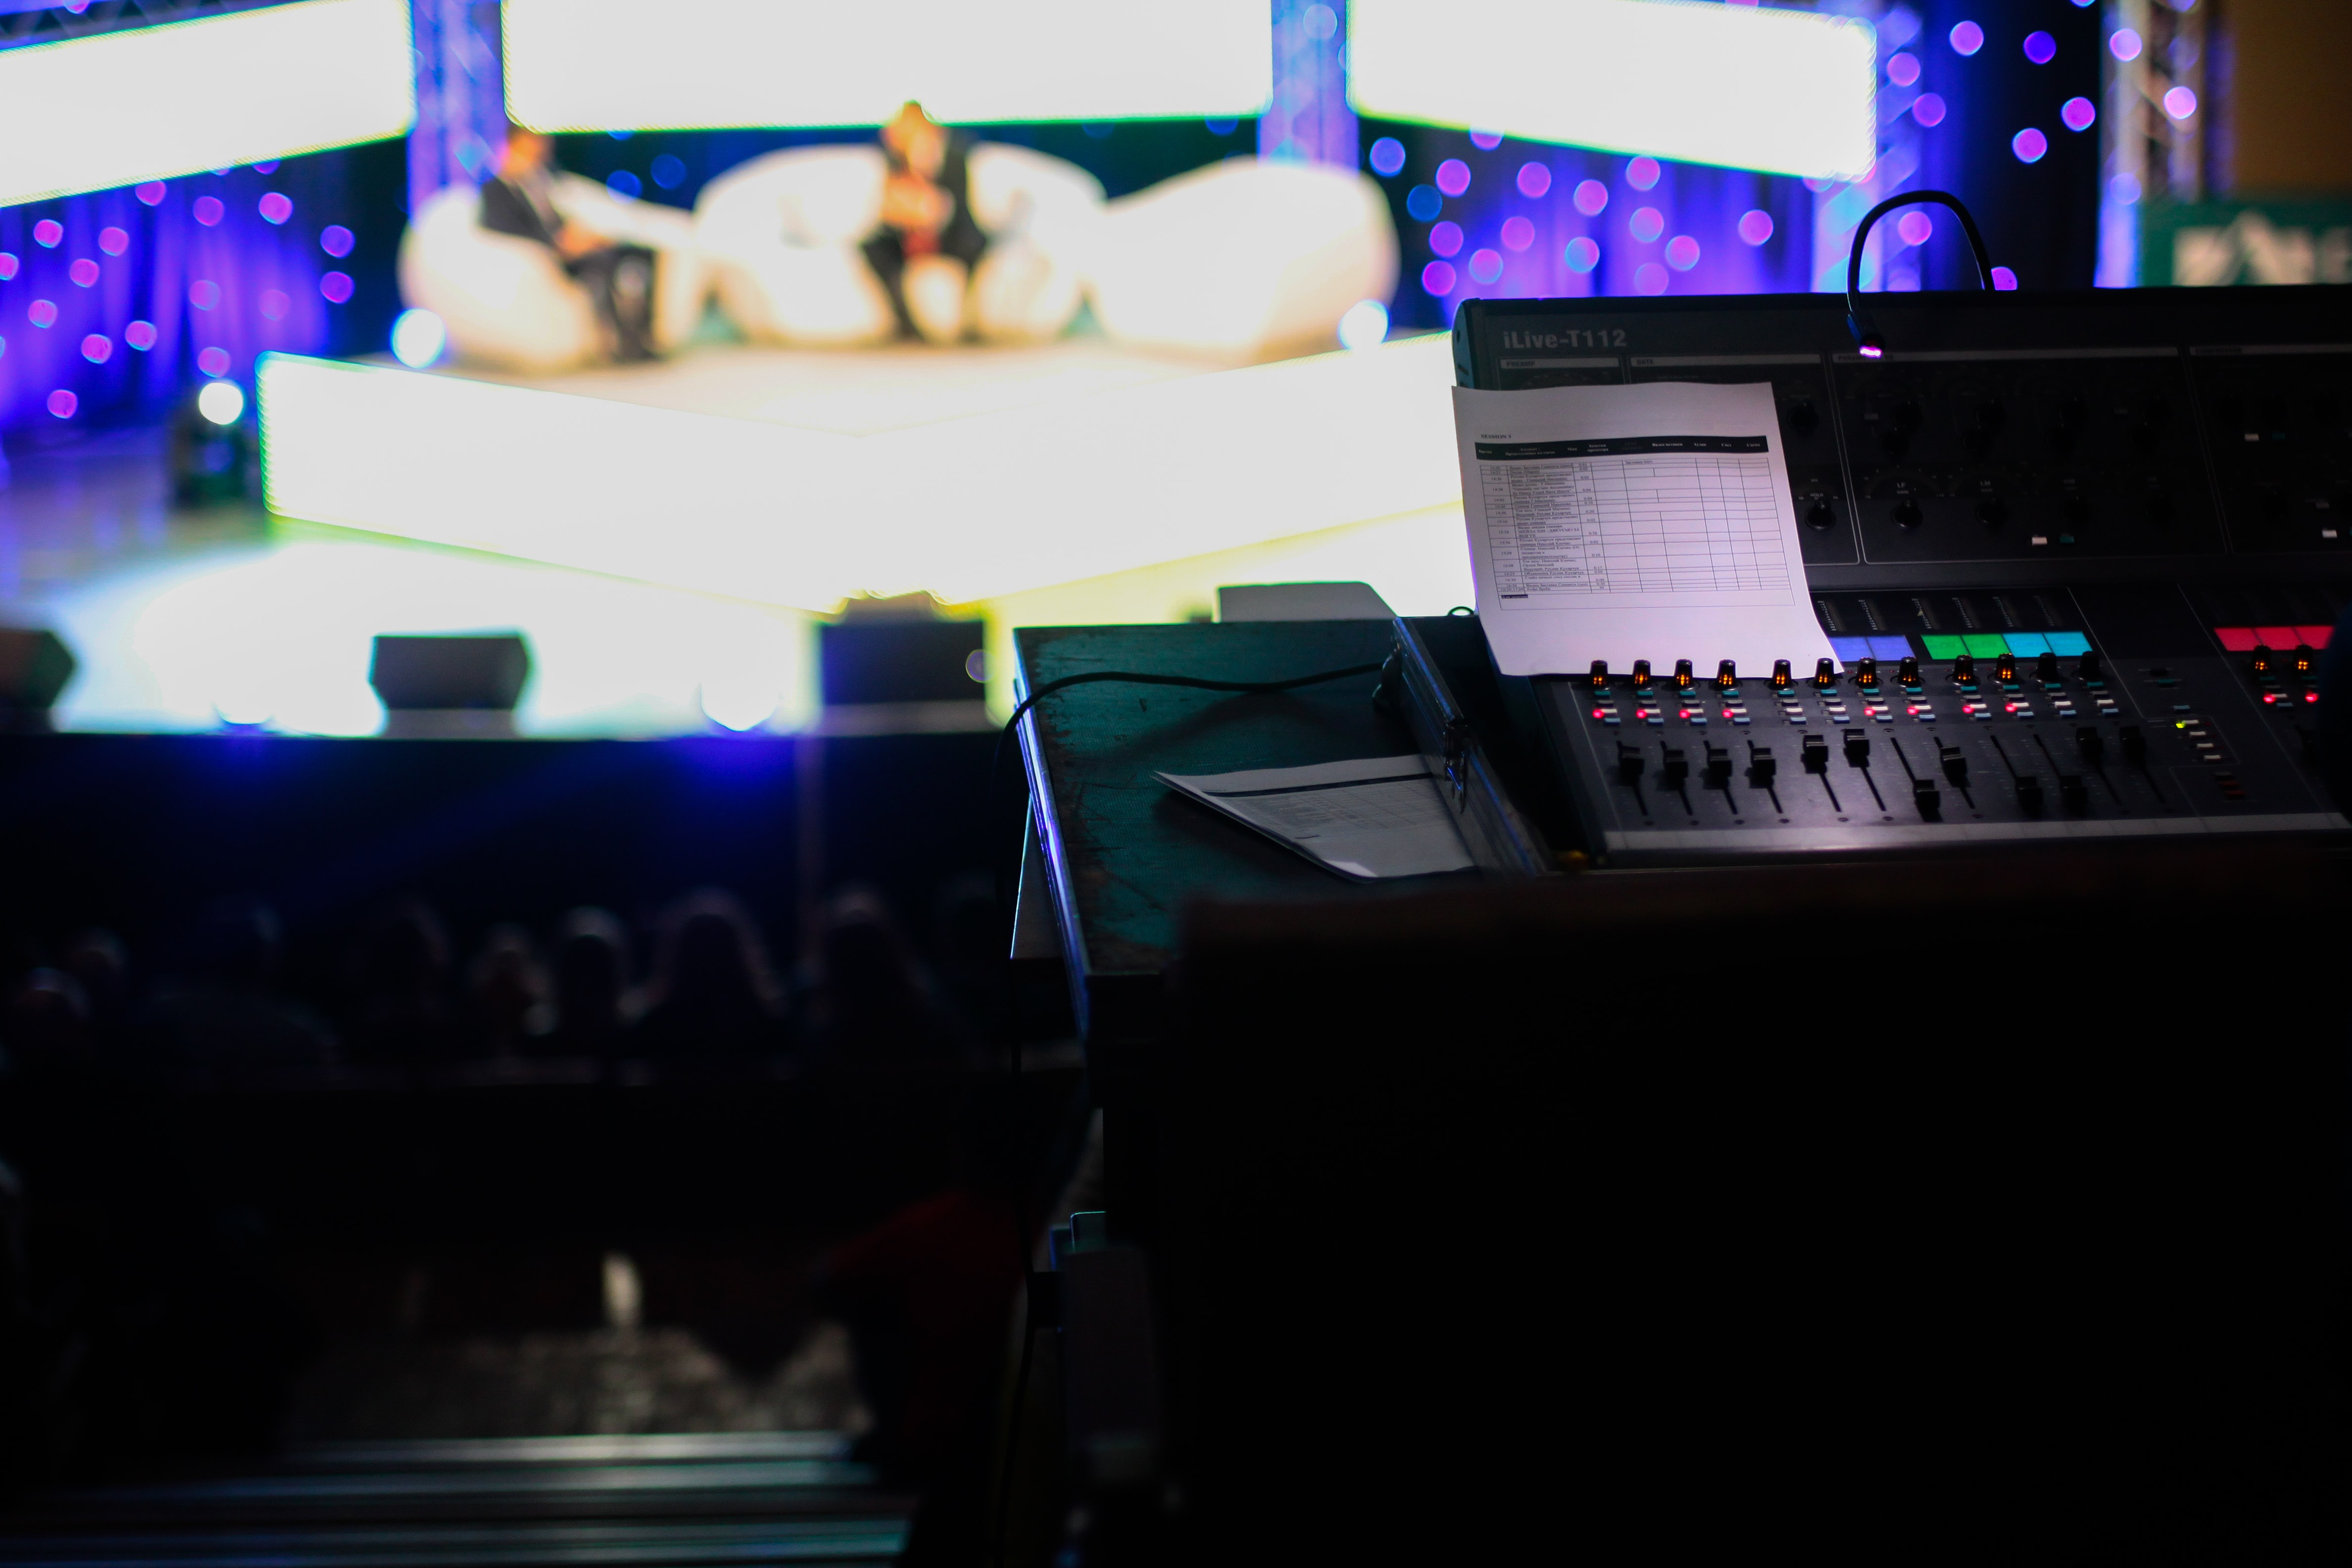 A sound and lighting board at the back of a set with an audience sitting in front of a live production